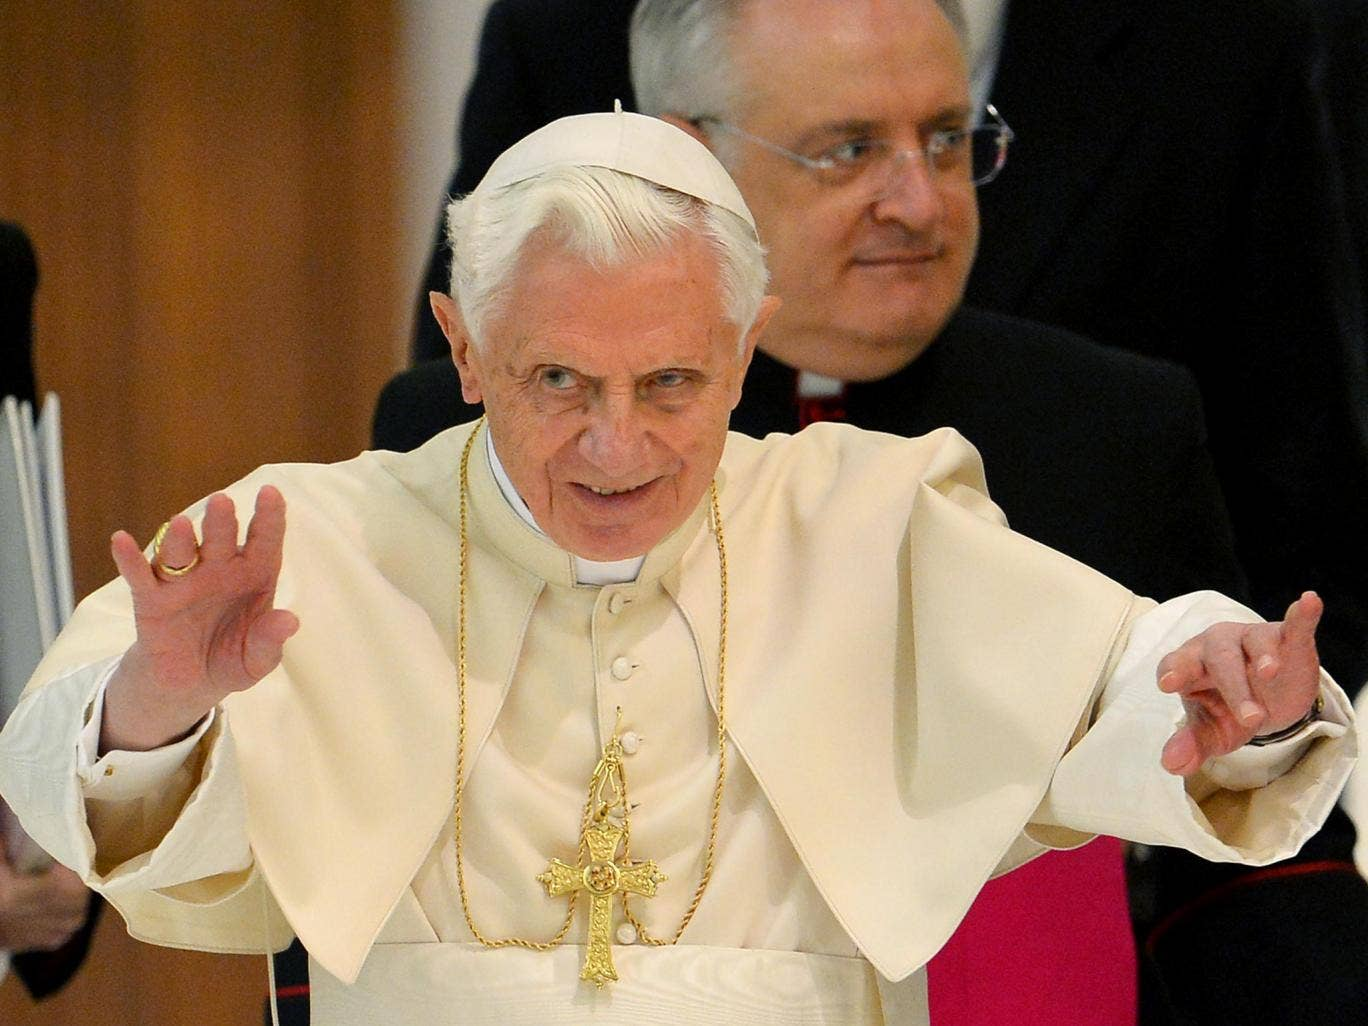 Pope Benedict XVI back in January last year, a month before he stepped down